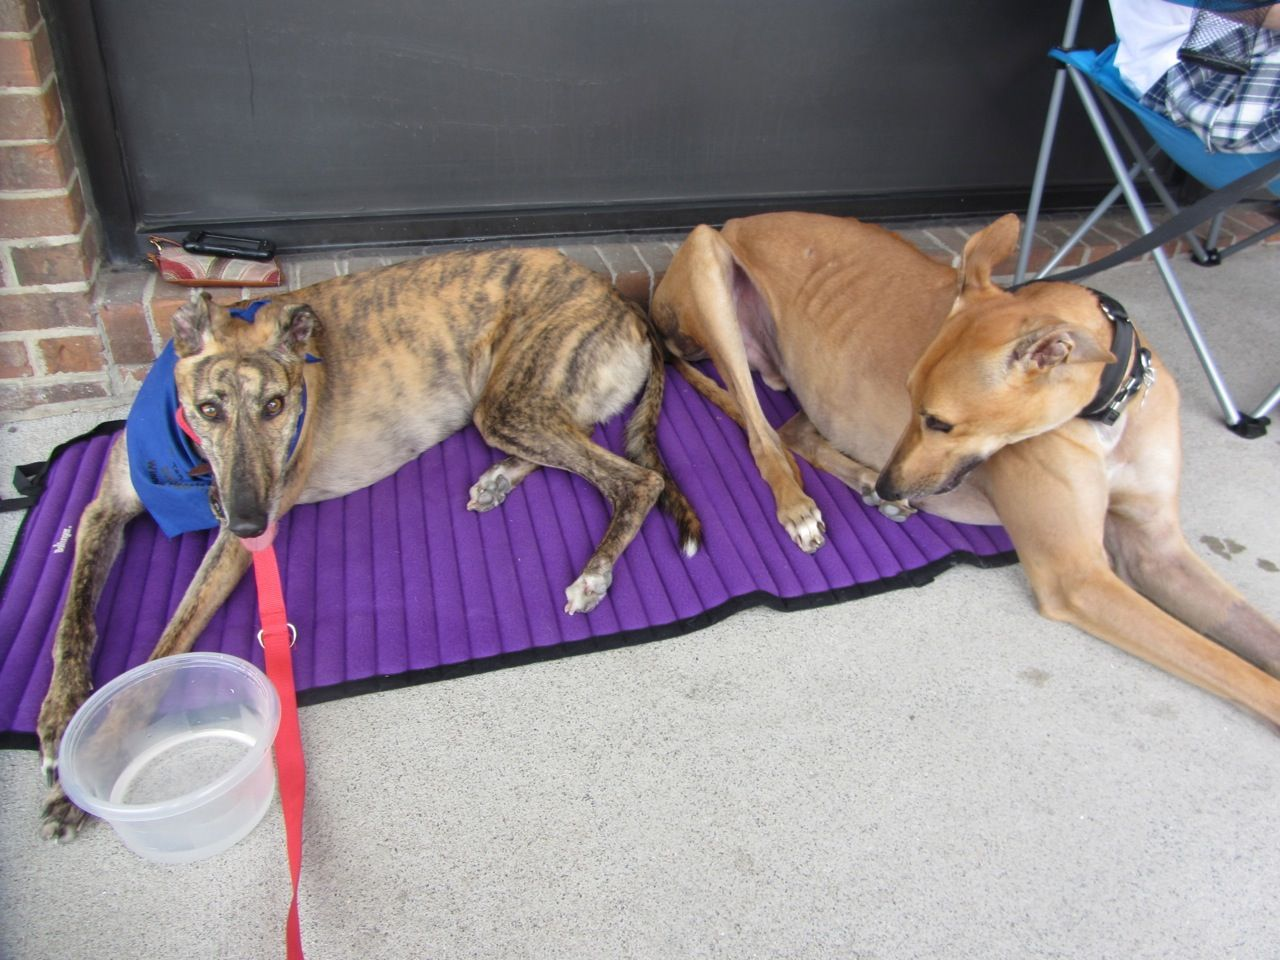 Fiona doesn't share her bed with just any greyhound. Simba